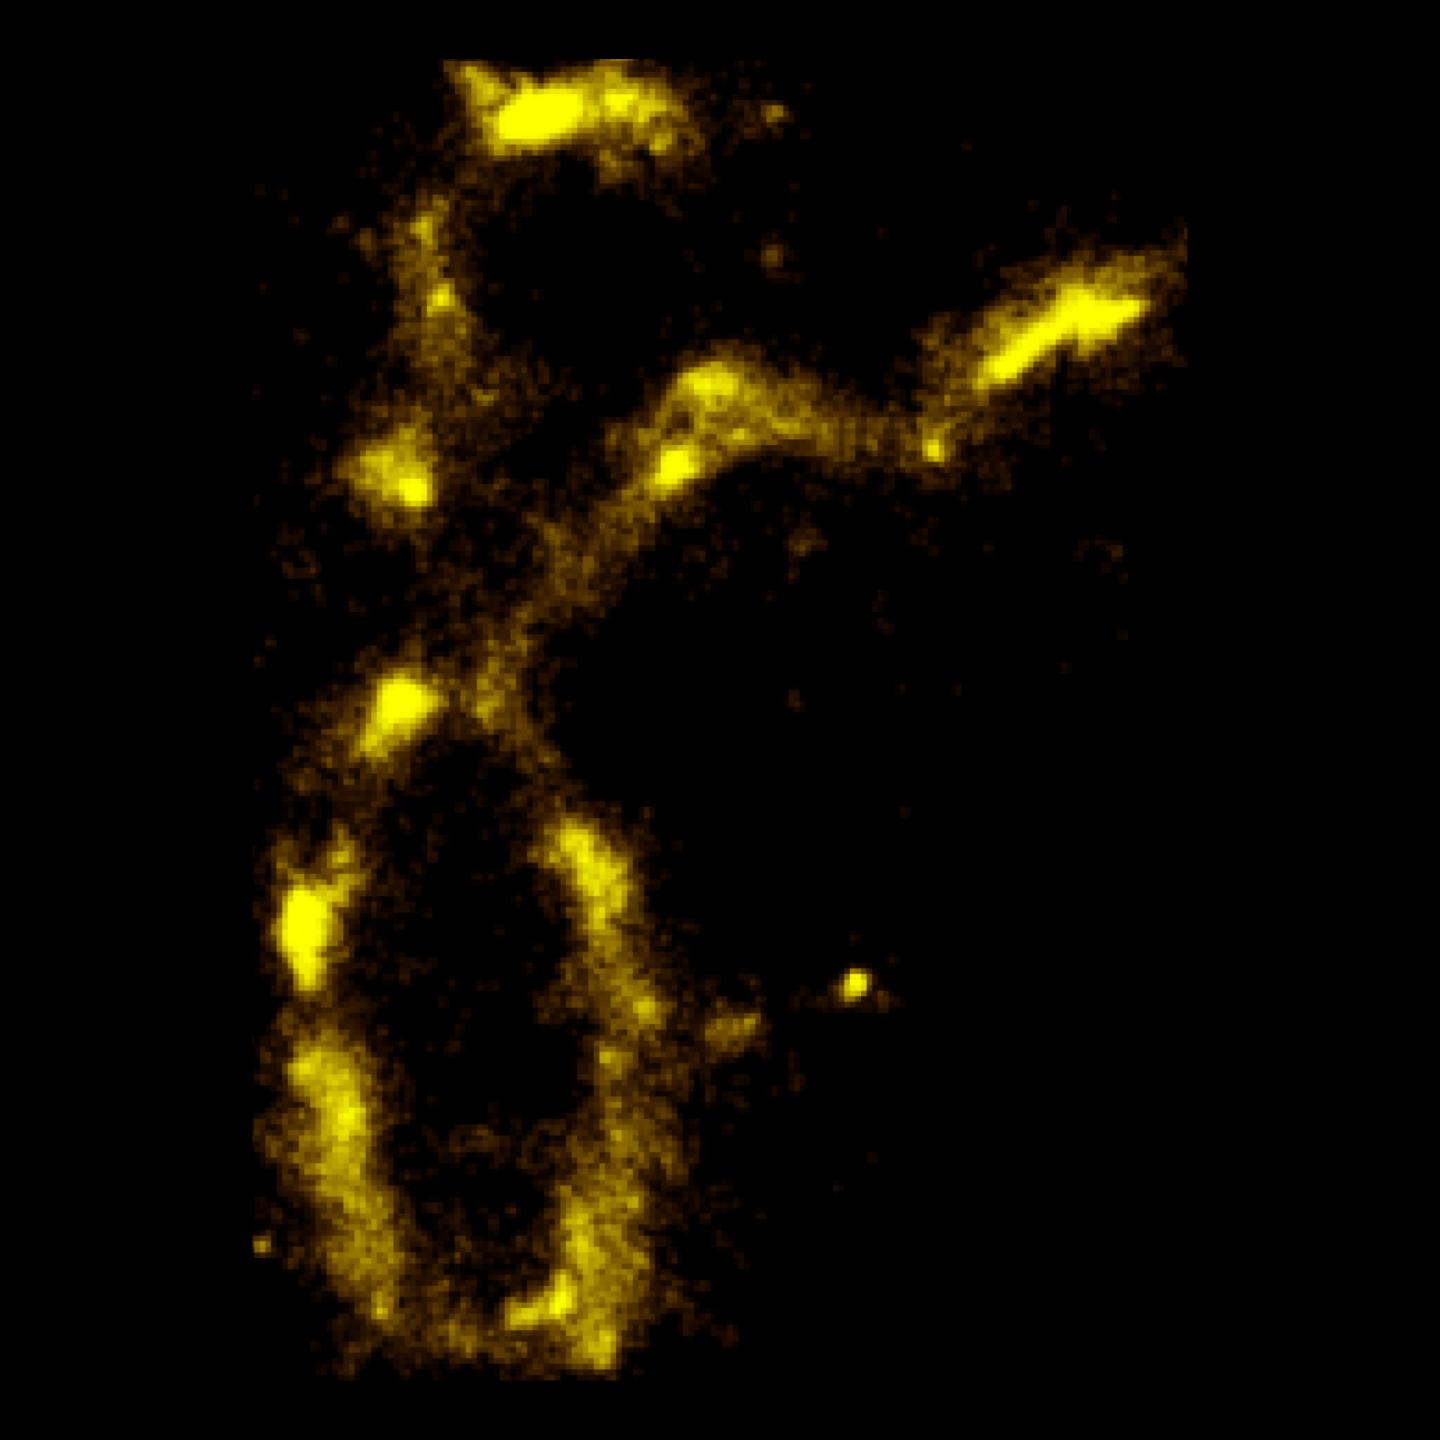 Technique for imaging DNA fluorescing. Northwestern University.